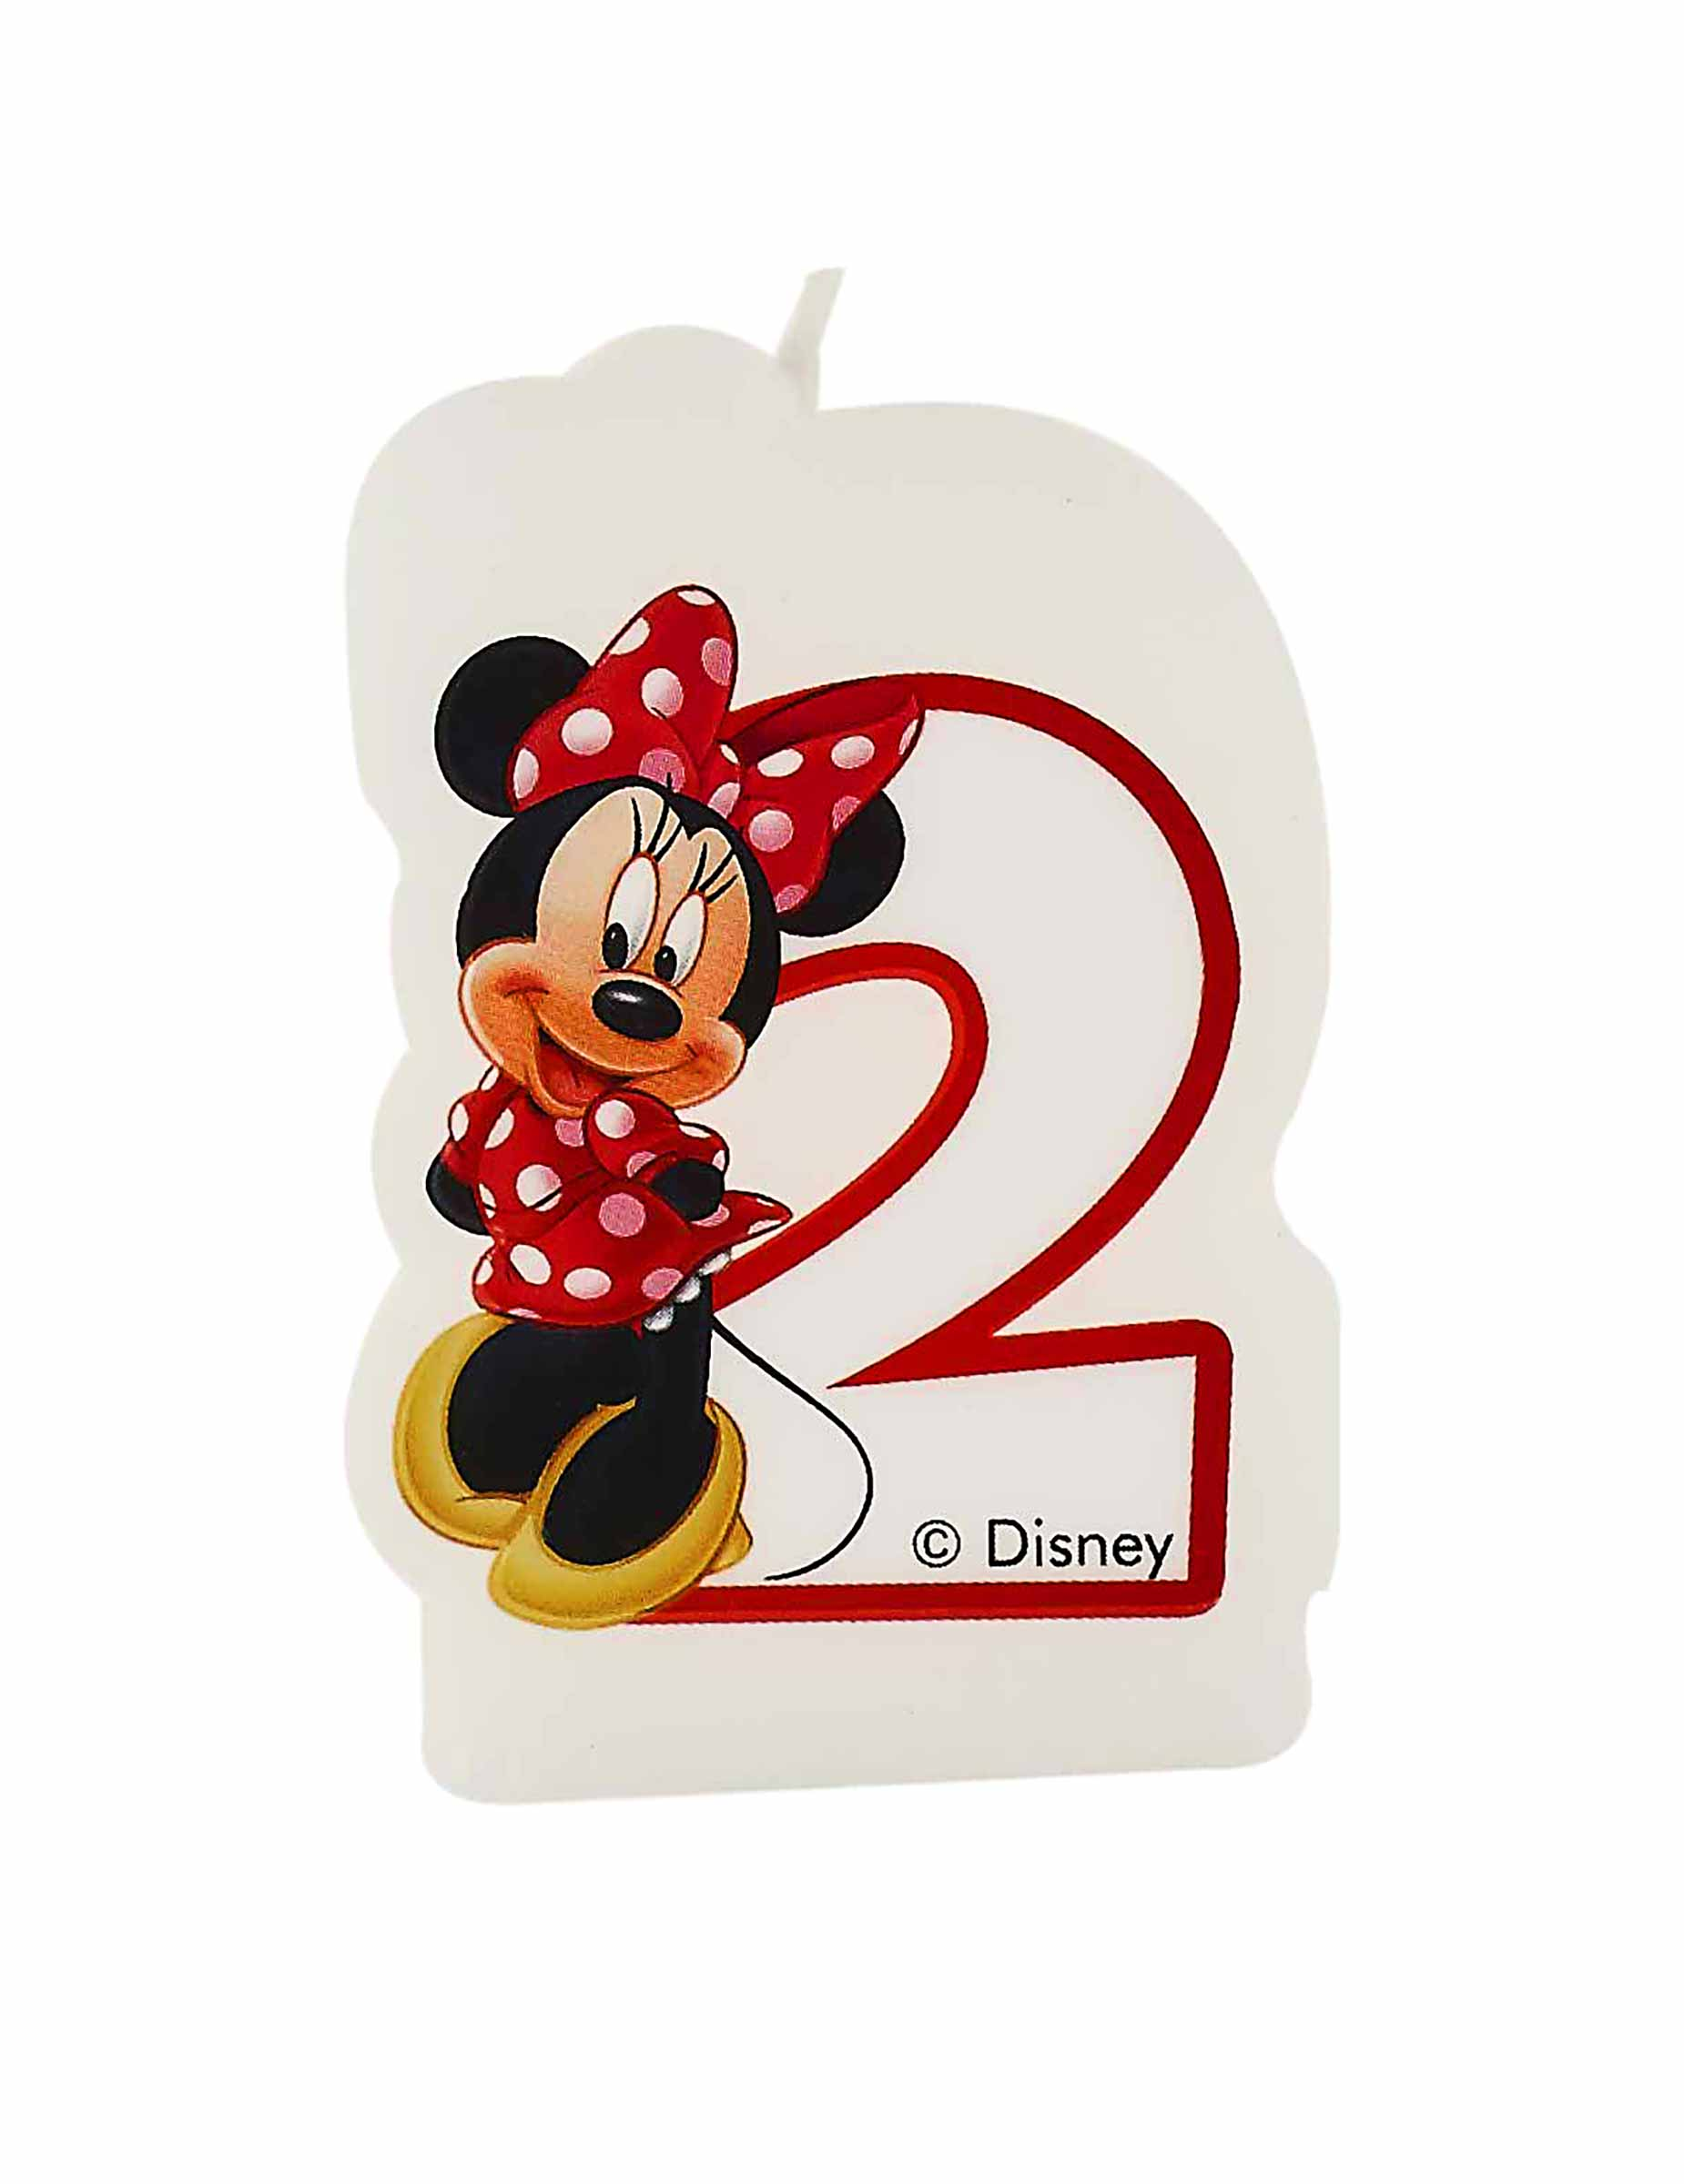 candelina per torte minnie 2 anni Minnie Mouse  Year Old Birthday Cakes